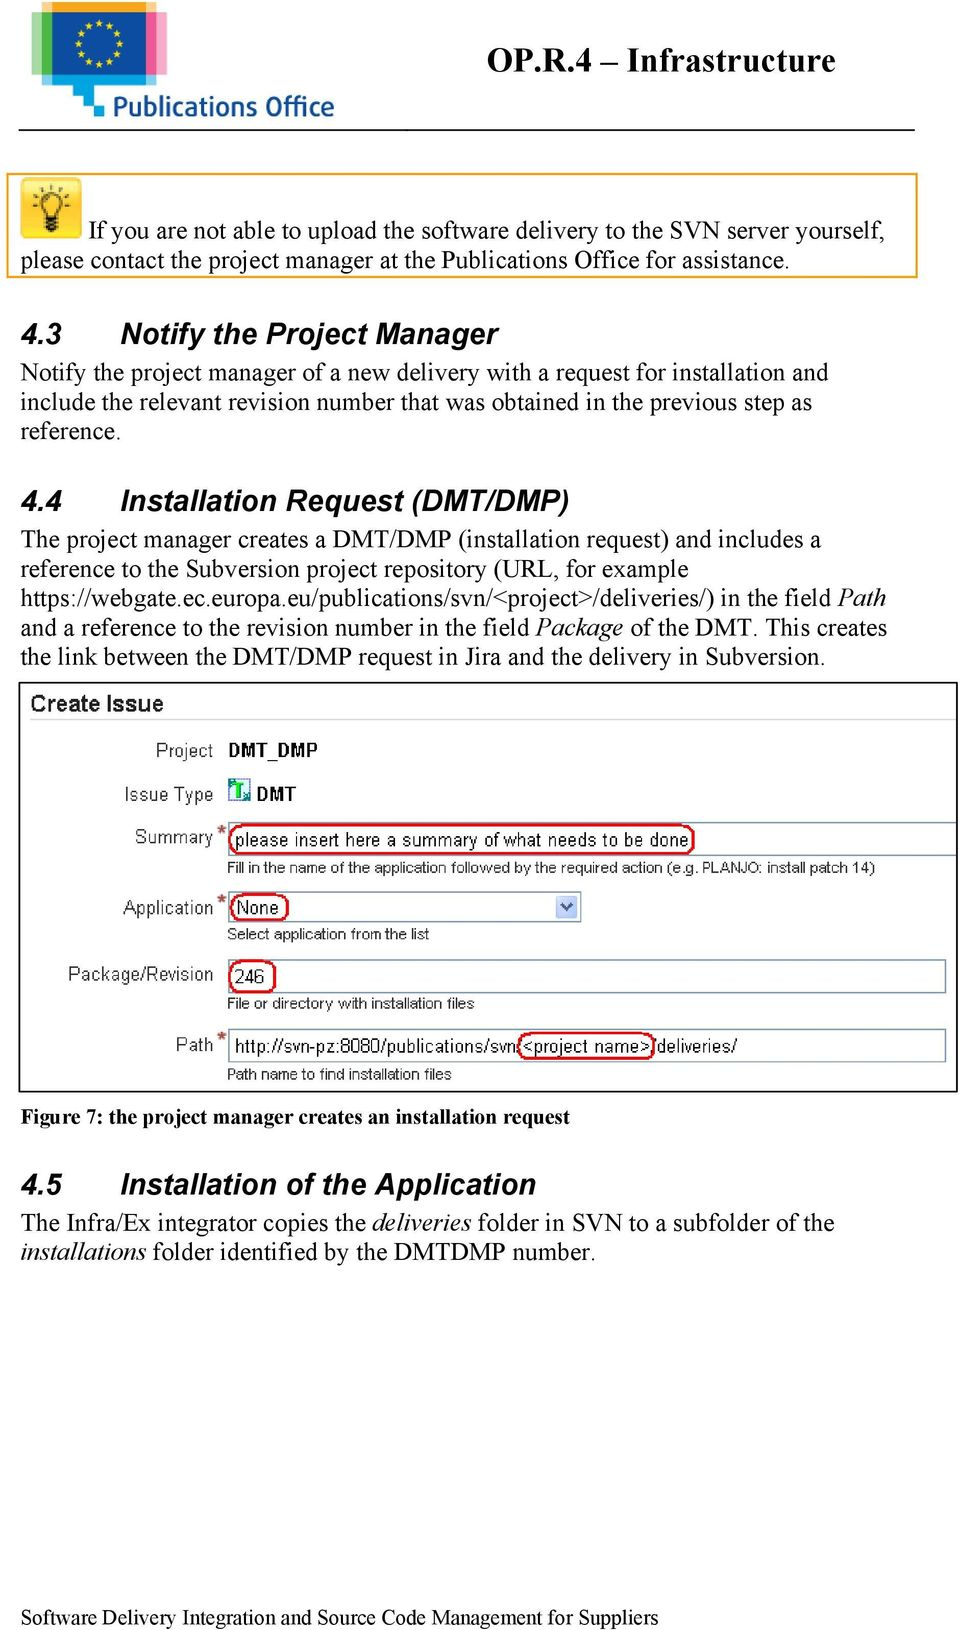 4.4 Installation Request (DMT/DMP) The project manager creates a DMT/DMP (installation request) and includes a reference to the Subversion project repository (URL, for example https://webgate.ec.europa.